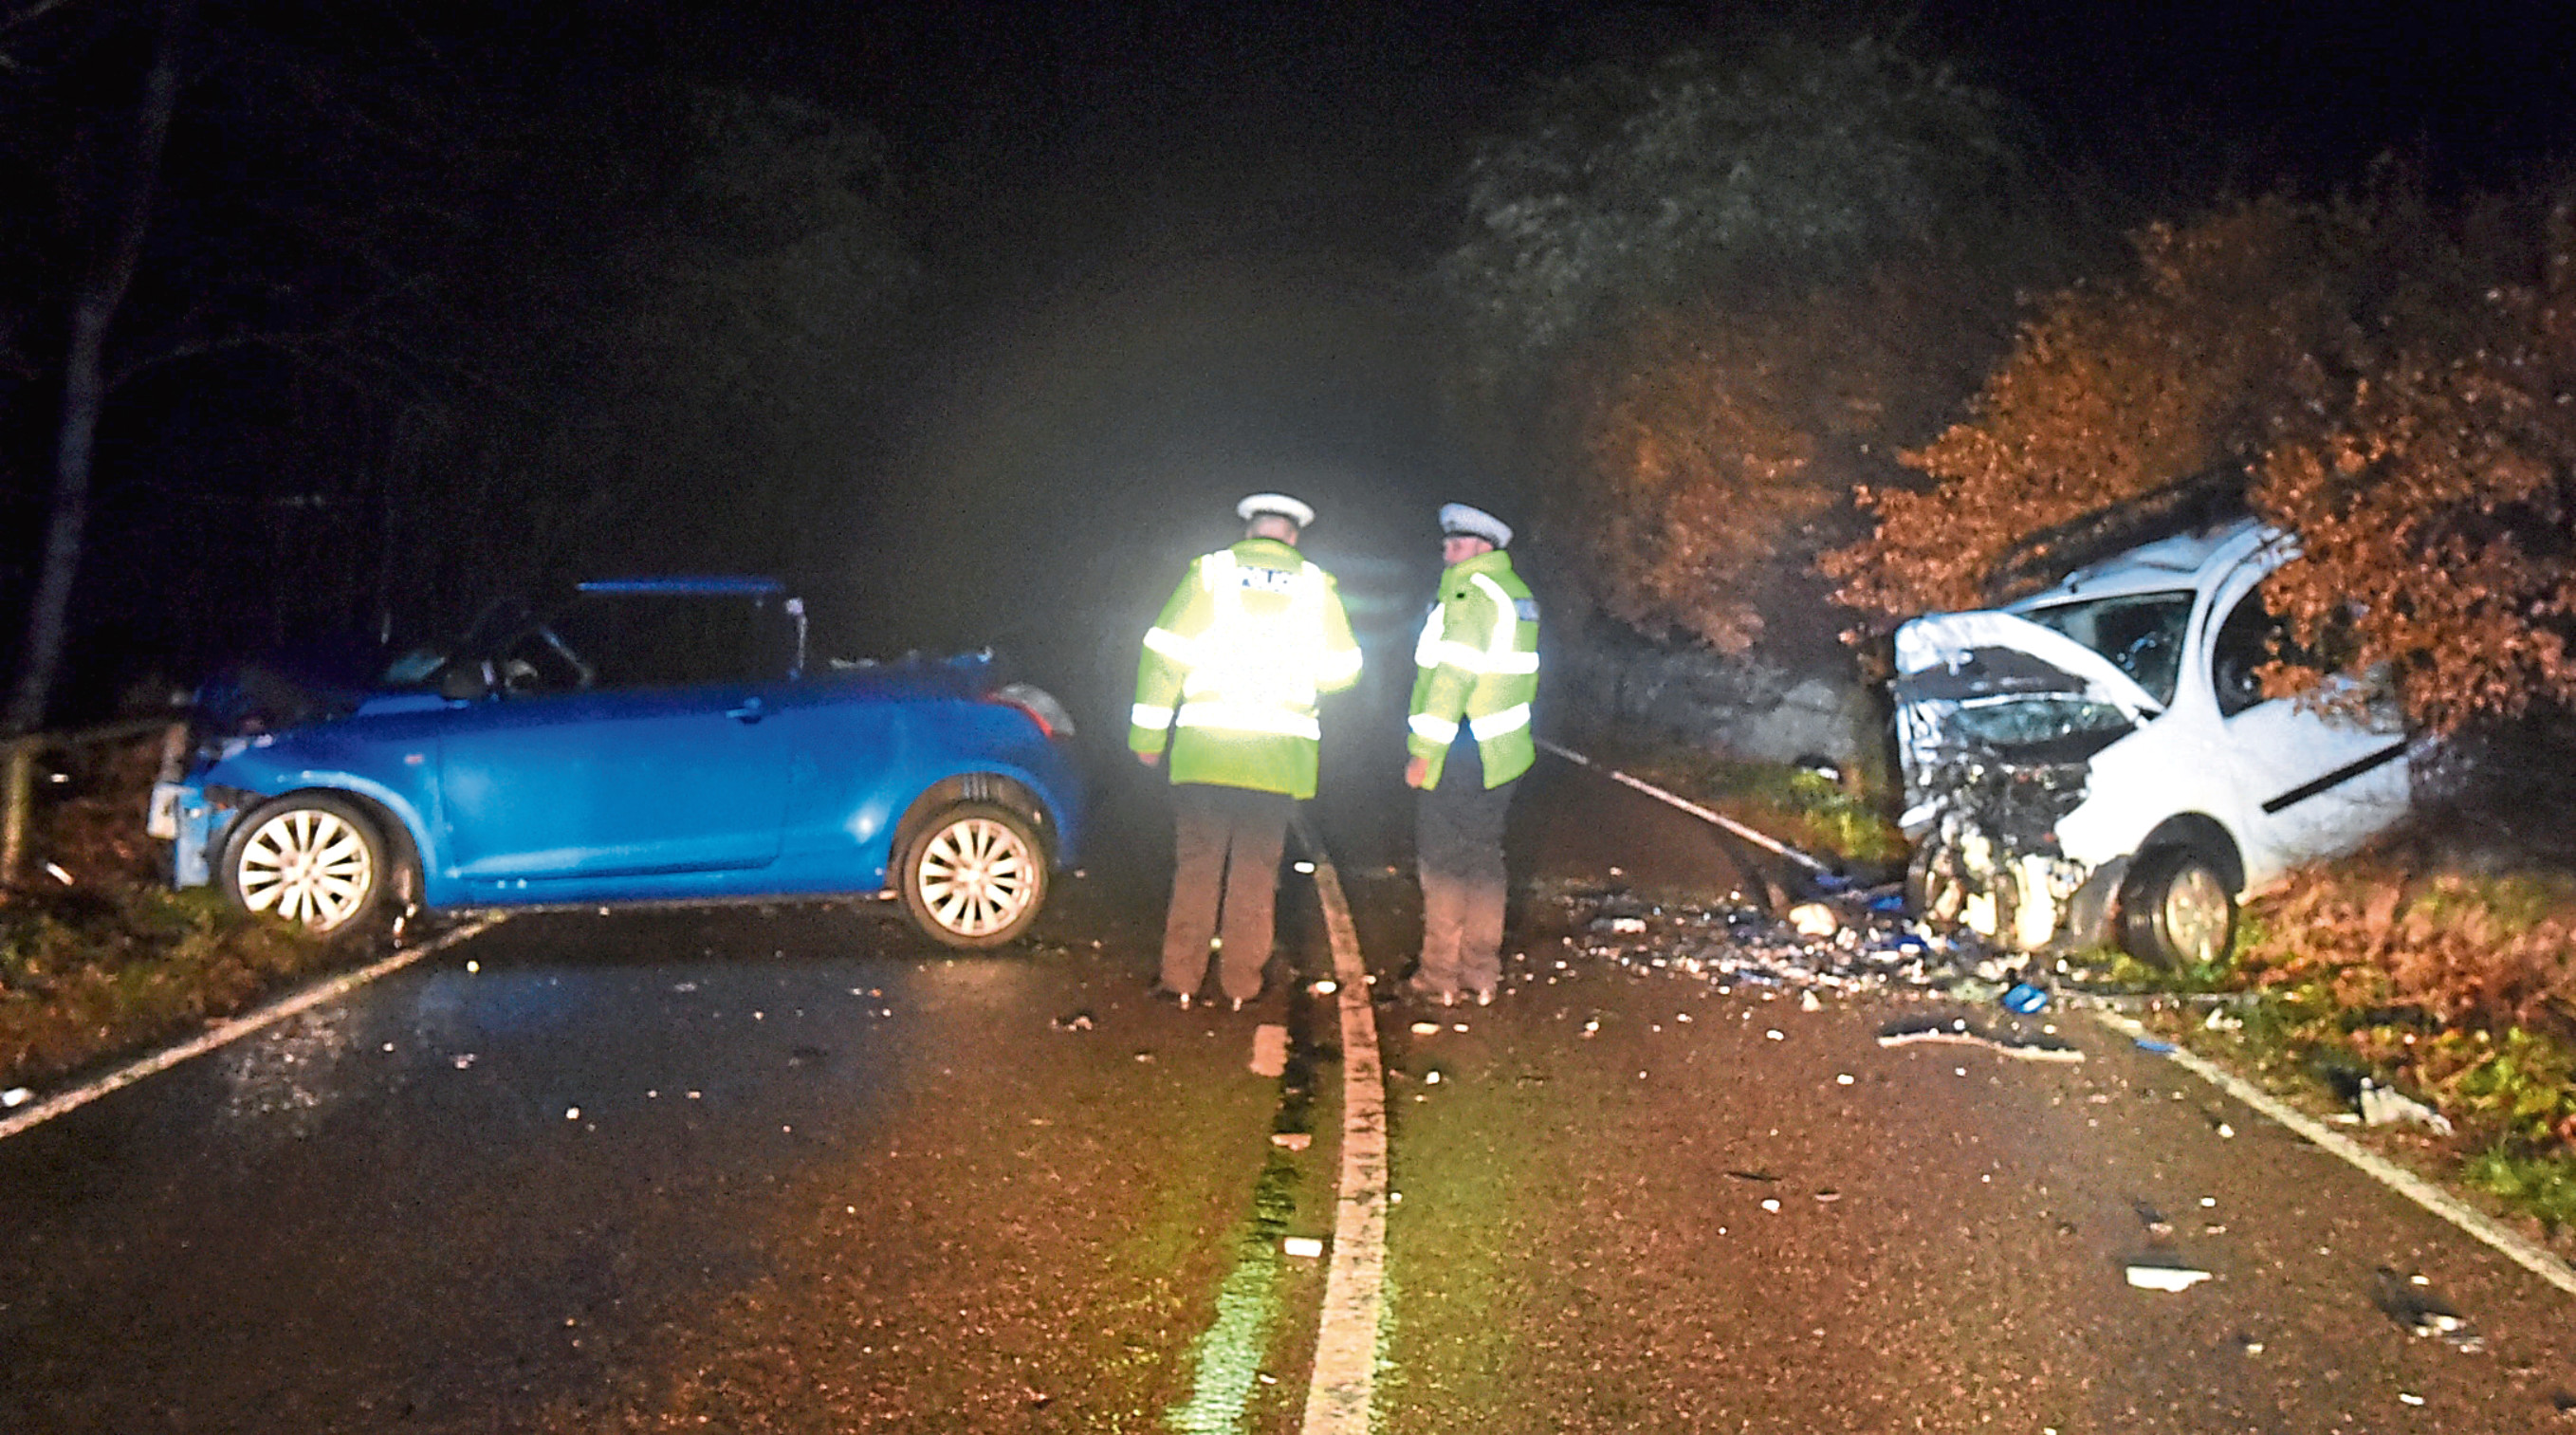 The aftermath of the accident on the A93 in December which led to a driving ban for Sally-Ann Henderson